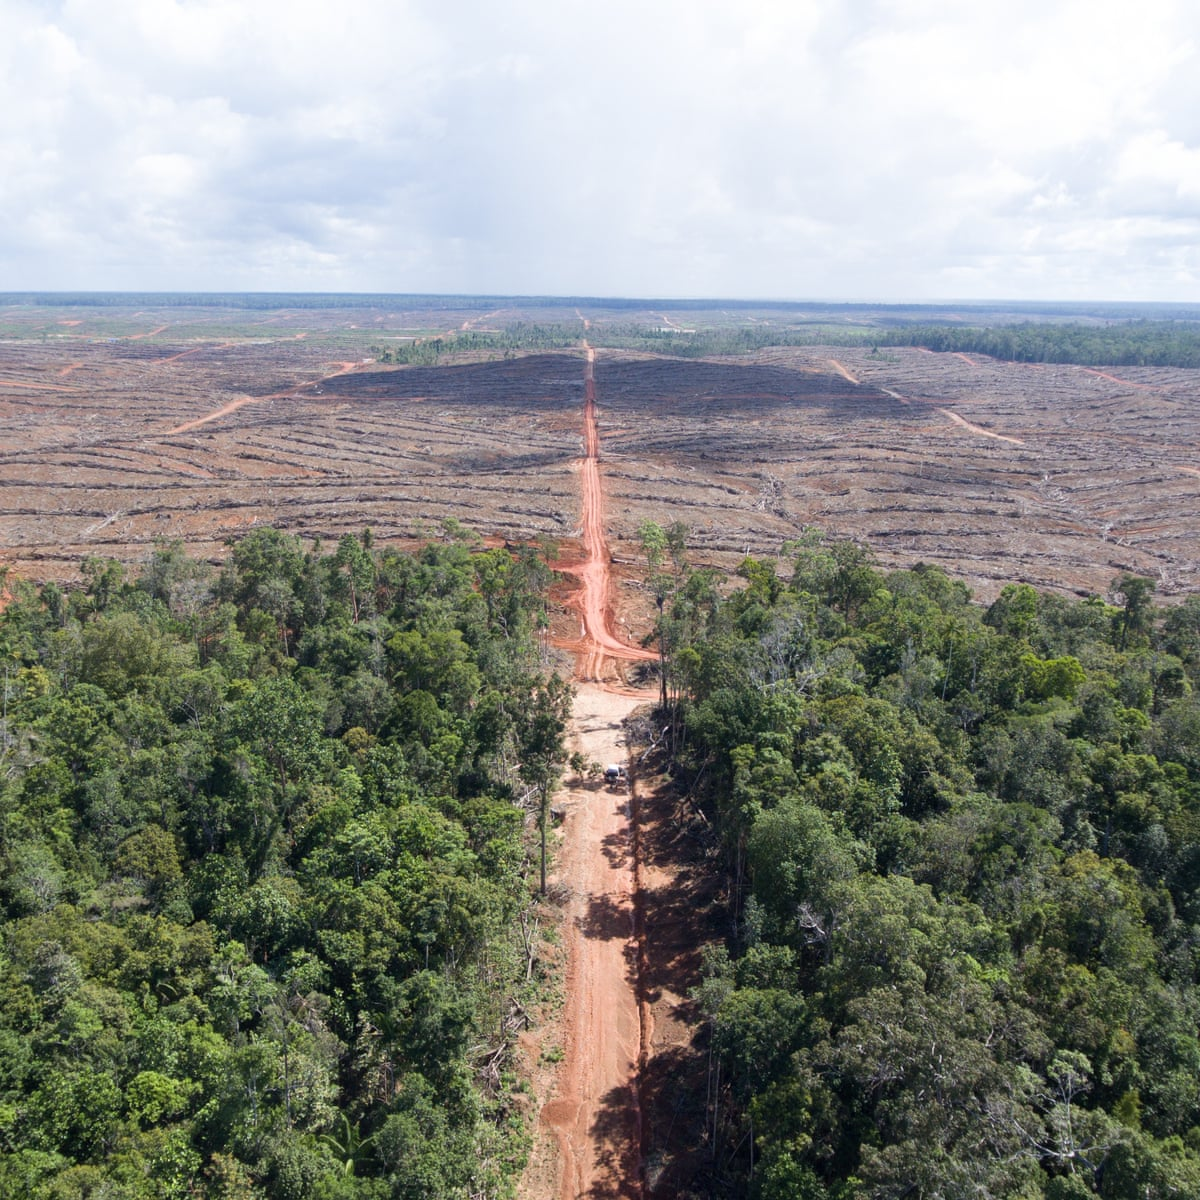 HSBC triggers investigation into palm oil company over deforestation  allegations   Guardian Sustainable Business   The Guardian